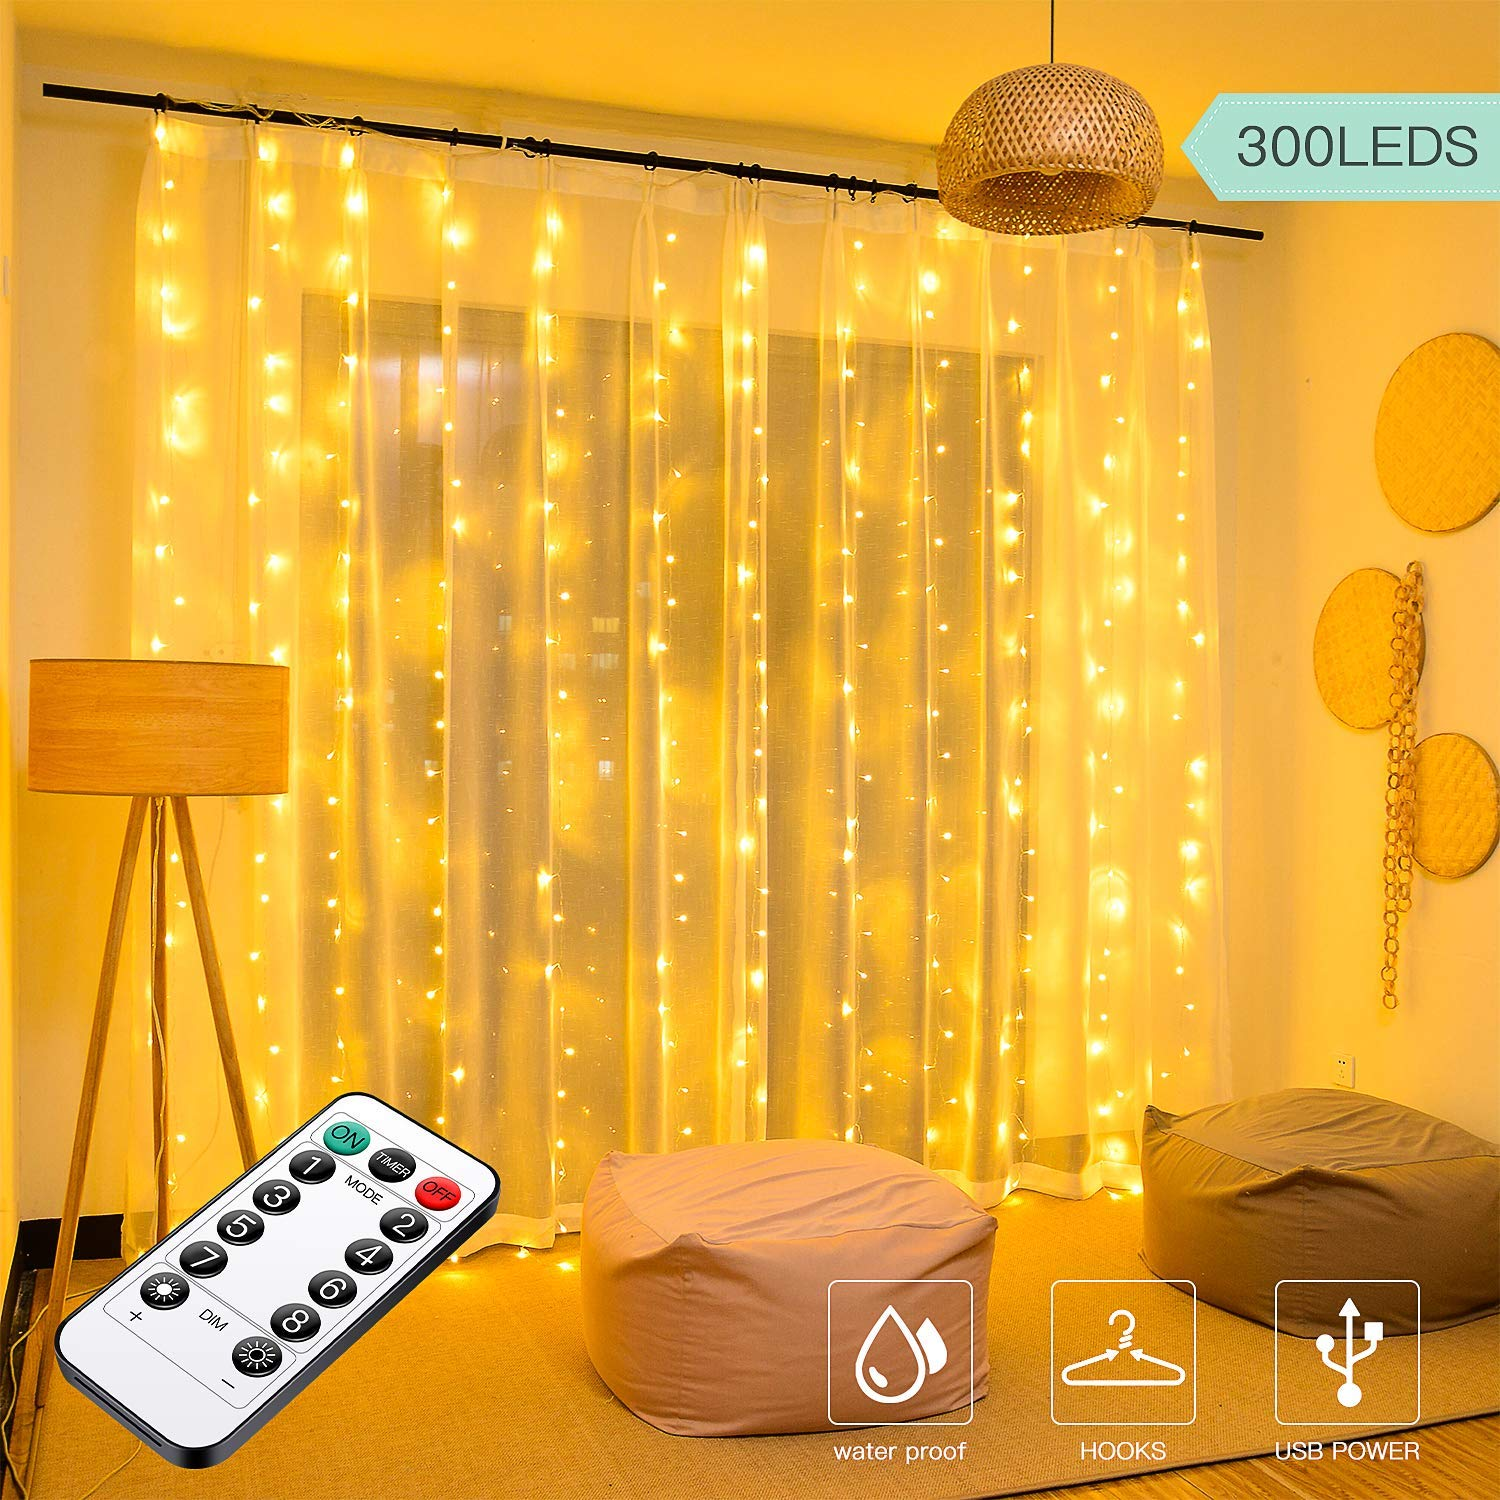 300 LED Curtain Lights,3mx3m USB Plug in Window Lights Only for £9.89